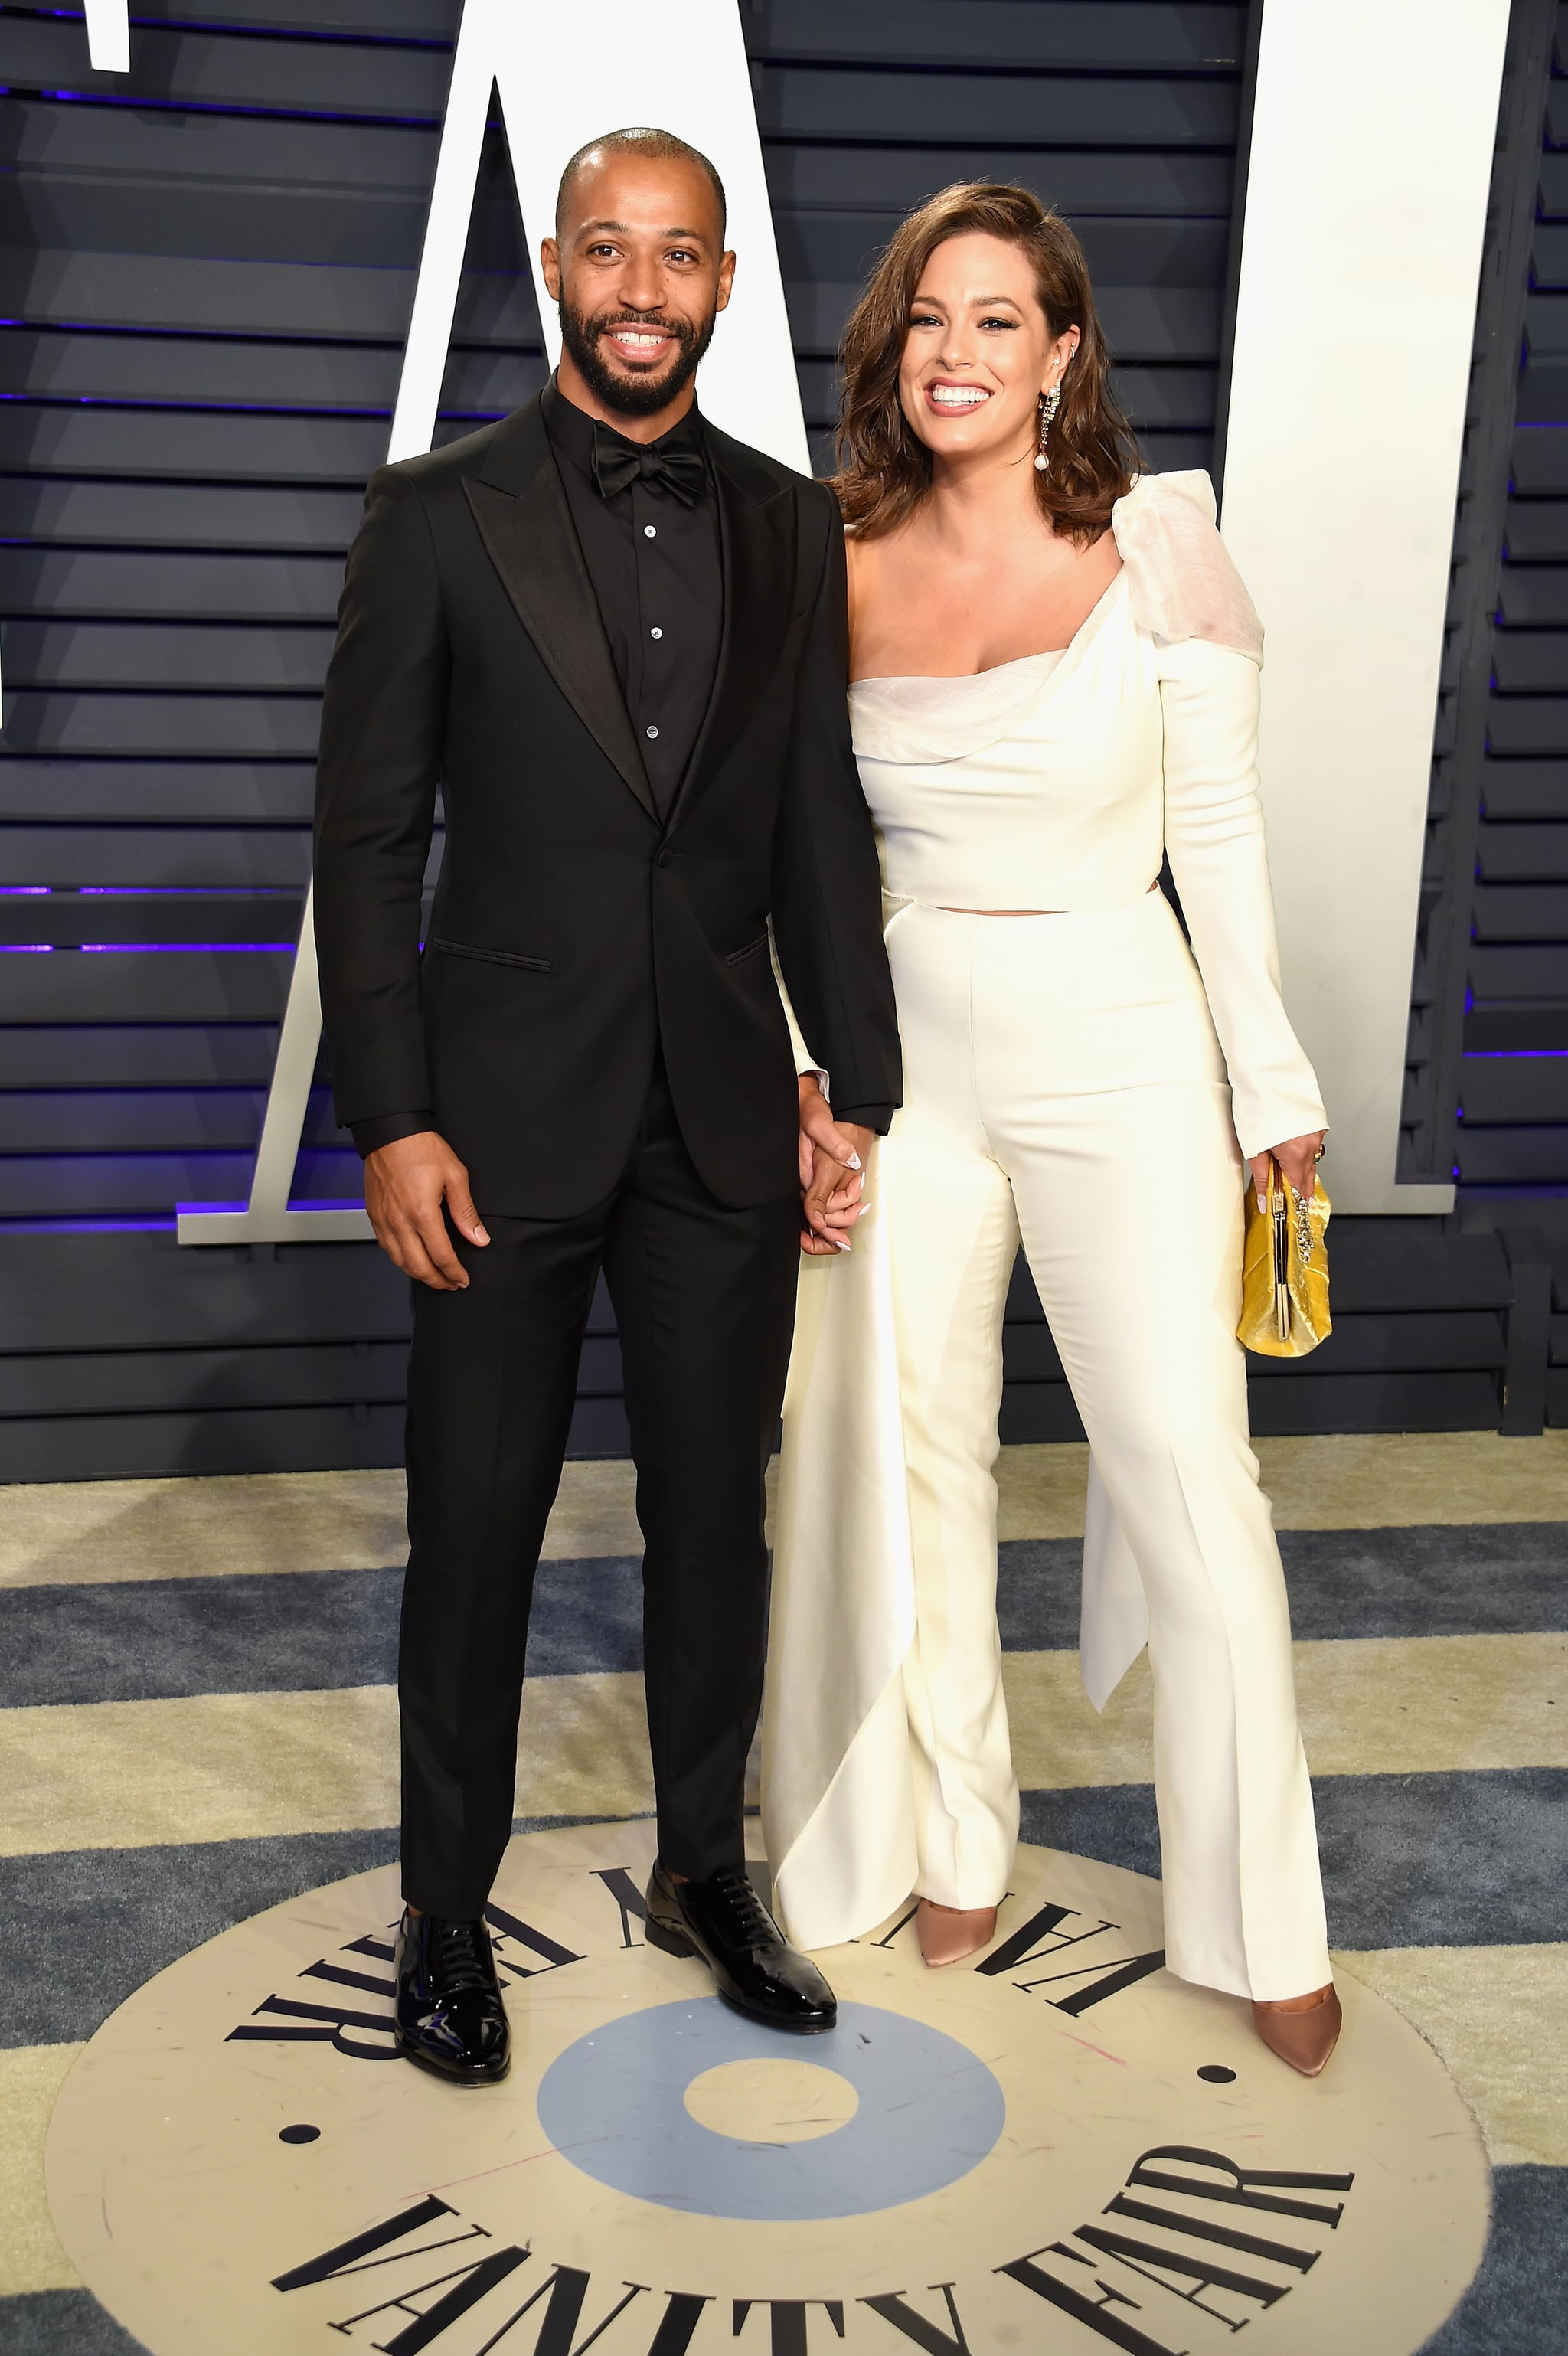 BEVERLY HILLS, CA - FEBRUARY 24:  Justin Ervin and Ashley Graham attend the 2019 Vanity Fair Oscar Party hosted by Radhika Jones at Wallis Annenberg Centre for the Performing Arts on February 24, 2019 in Beverly Hills, California.  (Photo by Gregg DeGuire/FilmMagic)